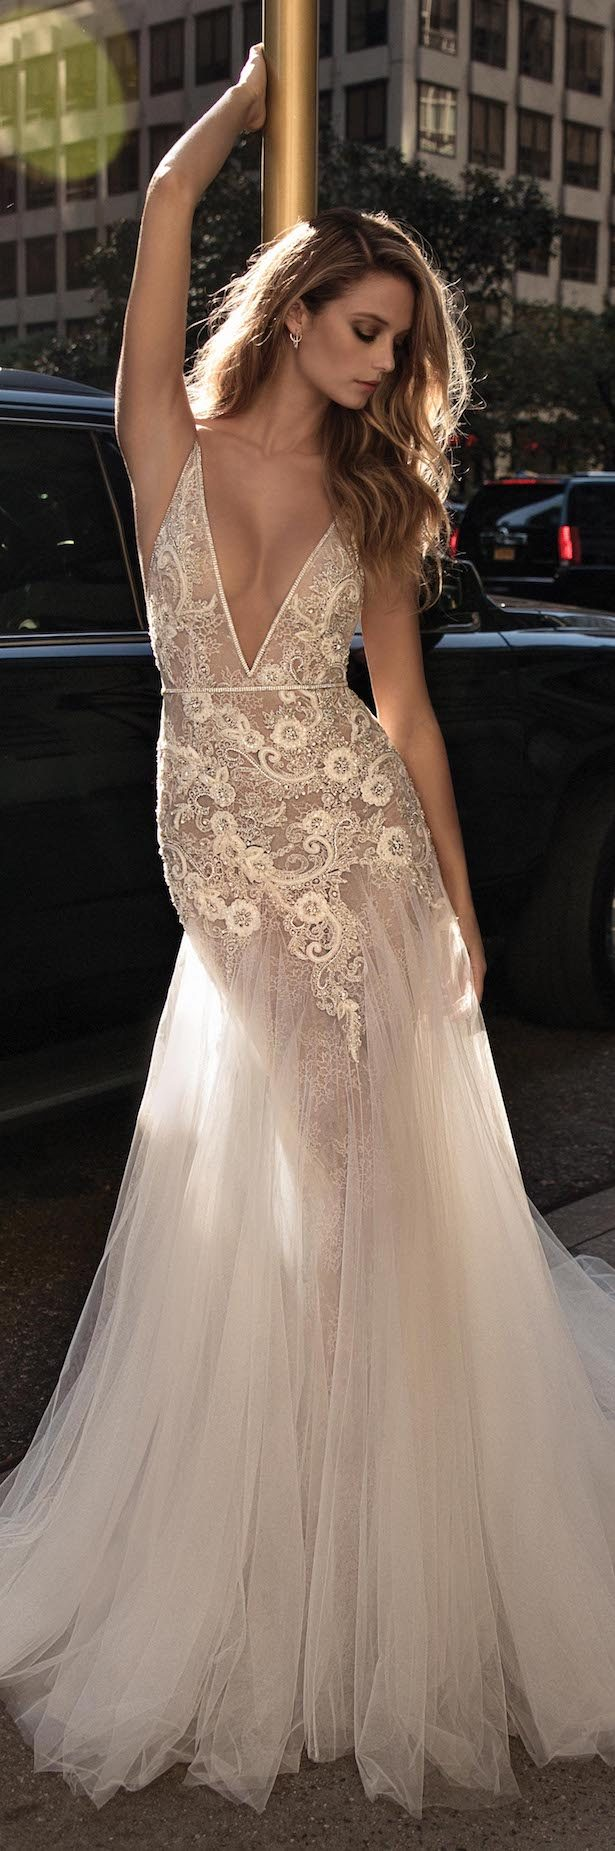 biggest wedding dresses in the world photo - 1